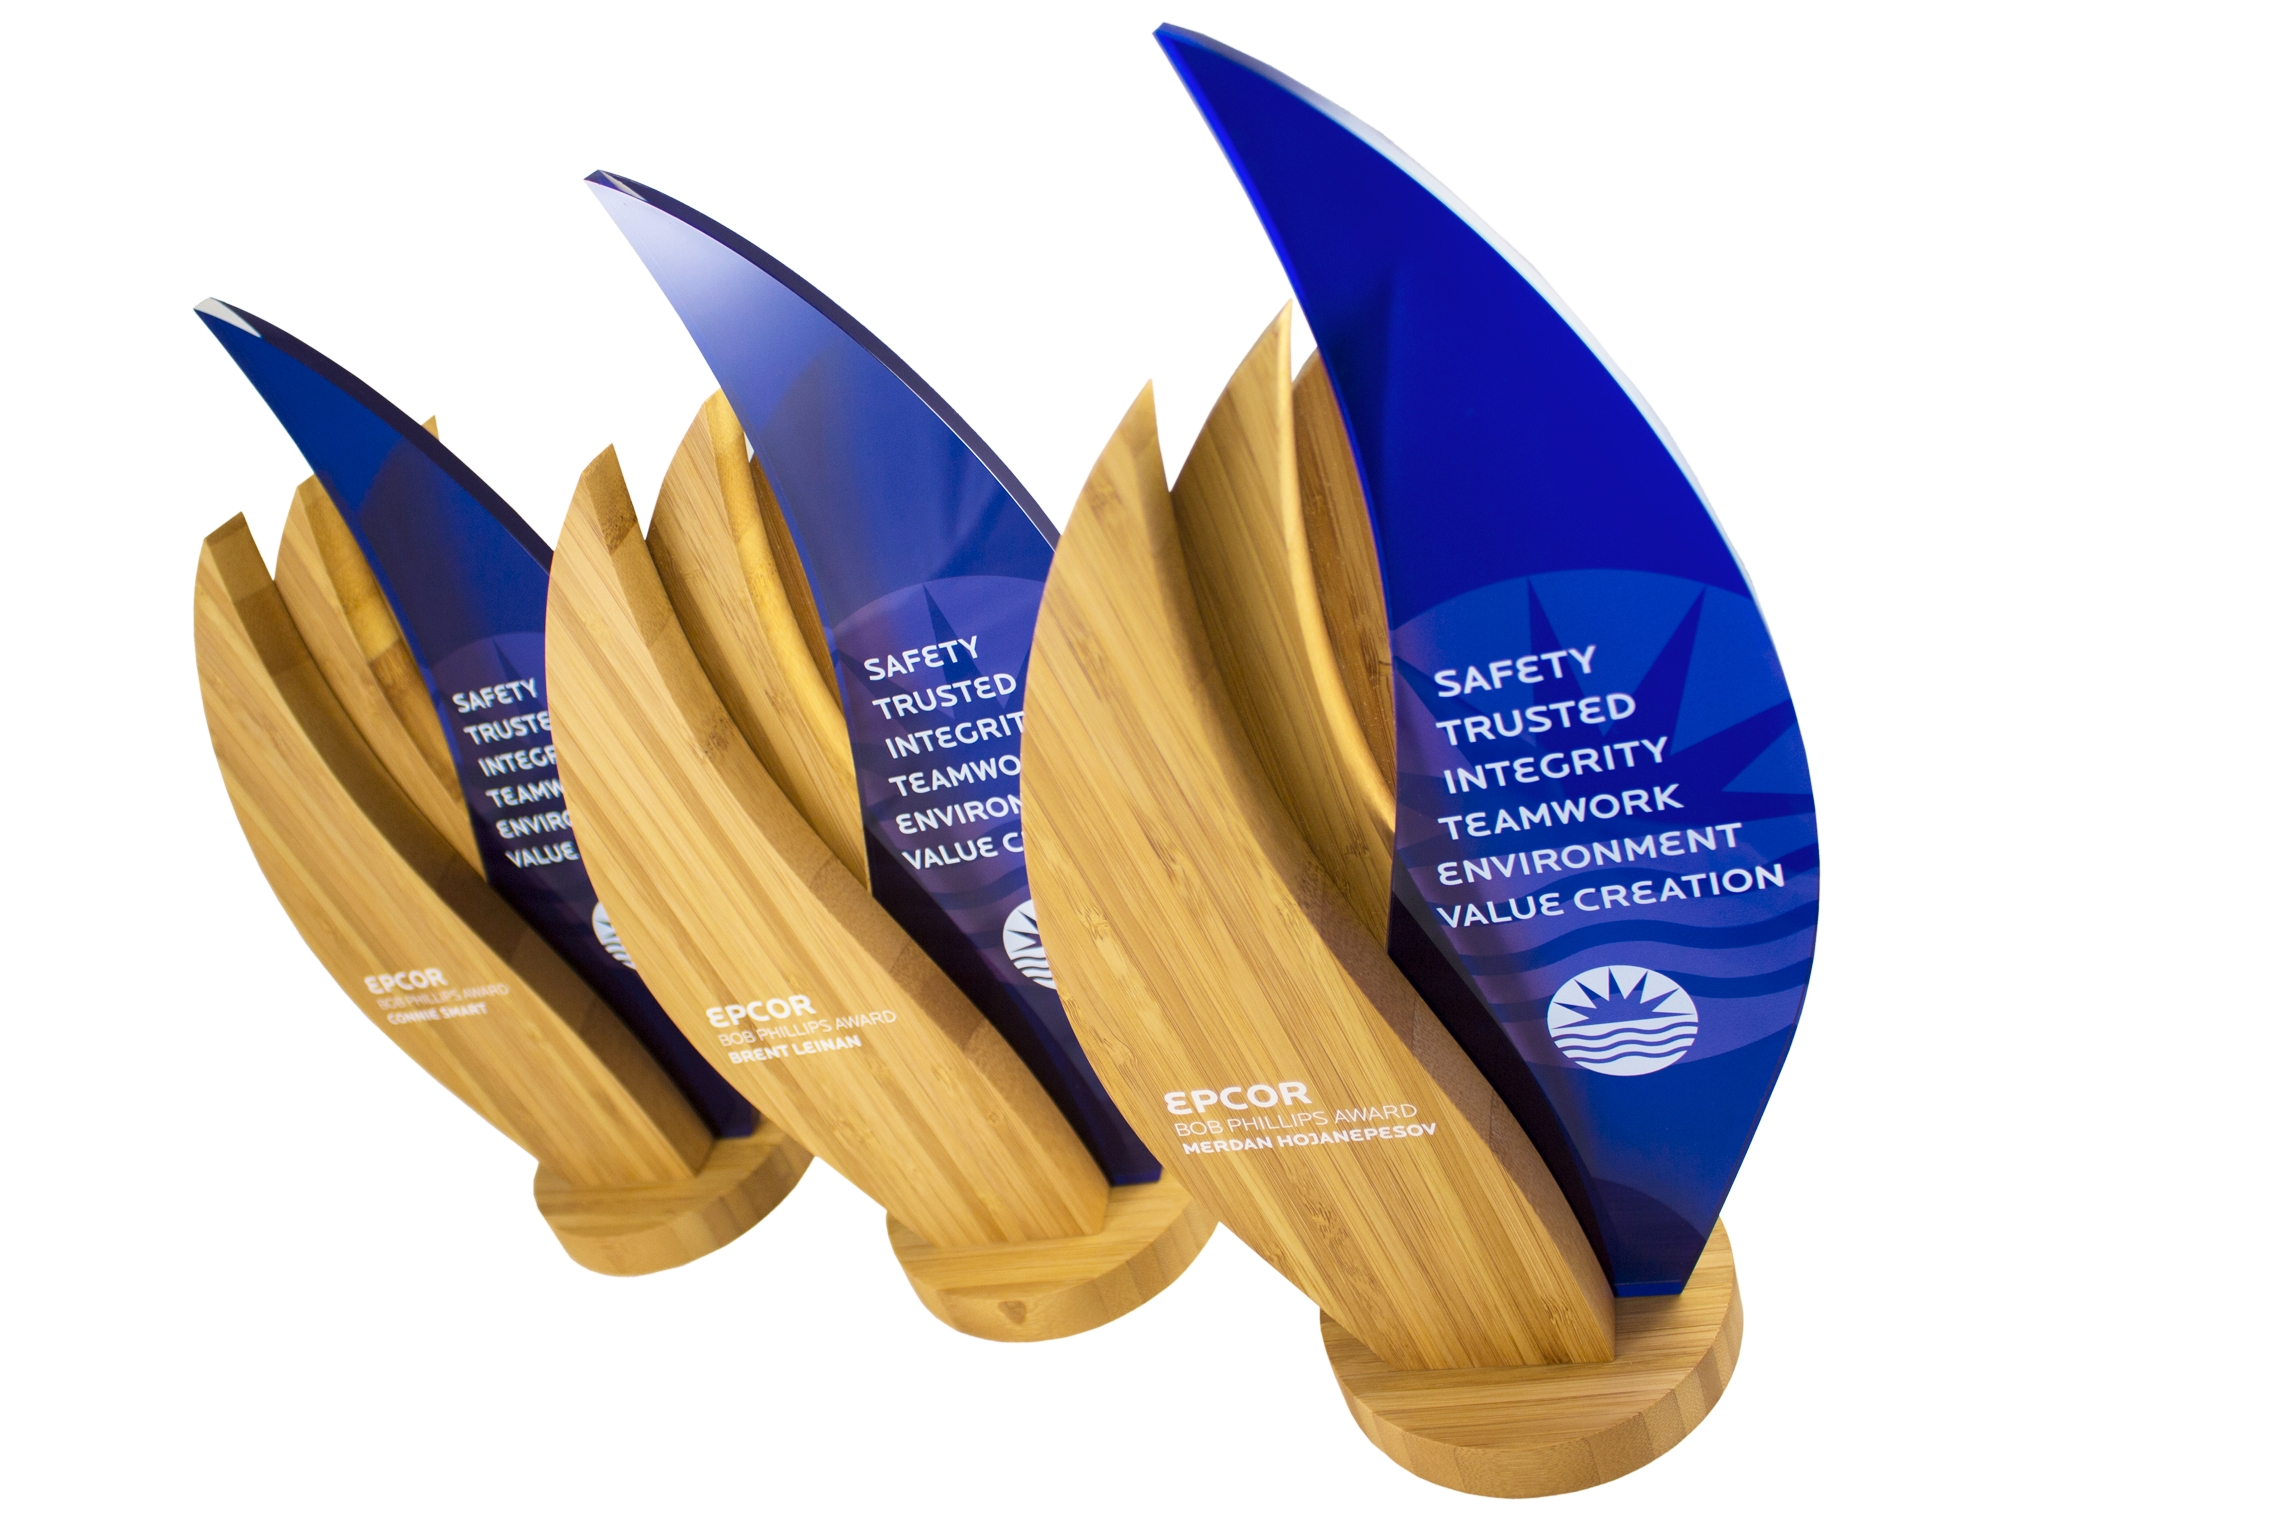 epcor-custom-award-trophy-designs.png